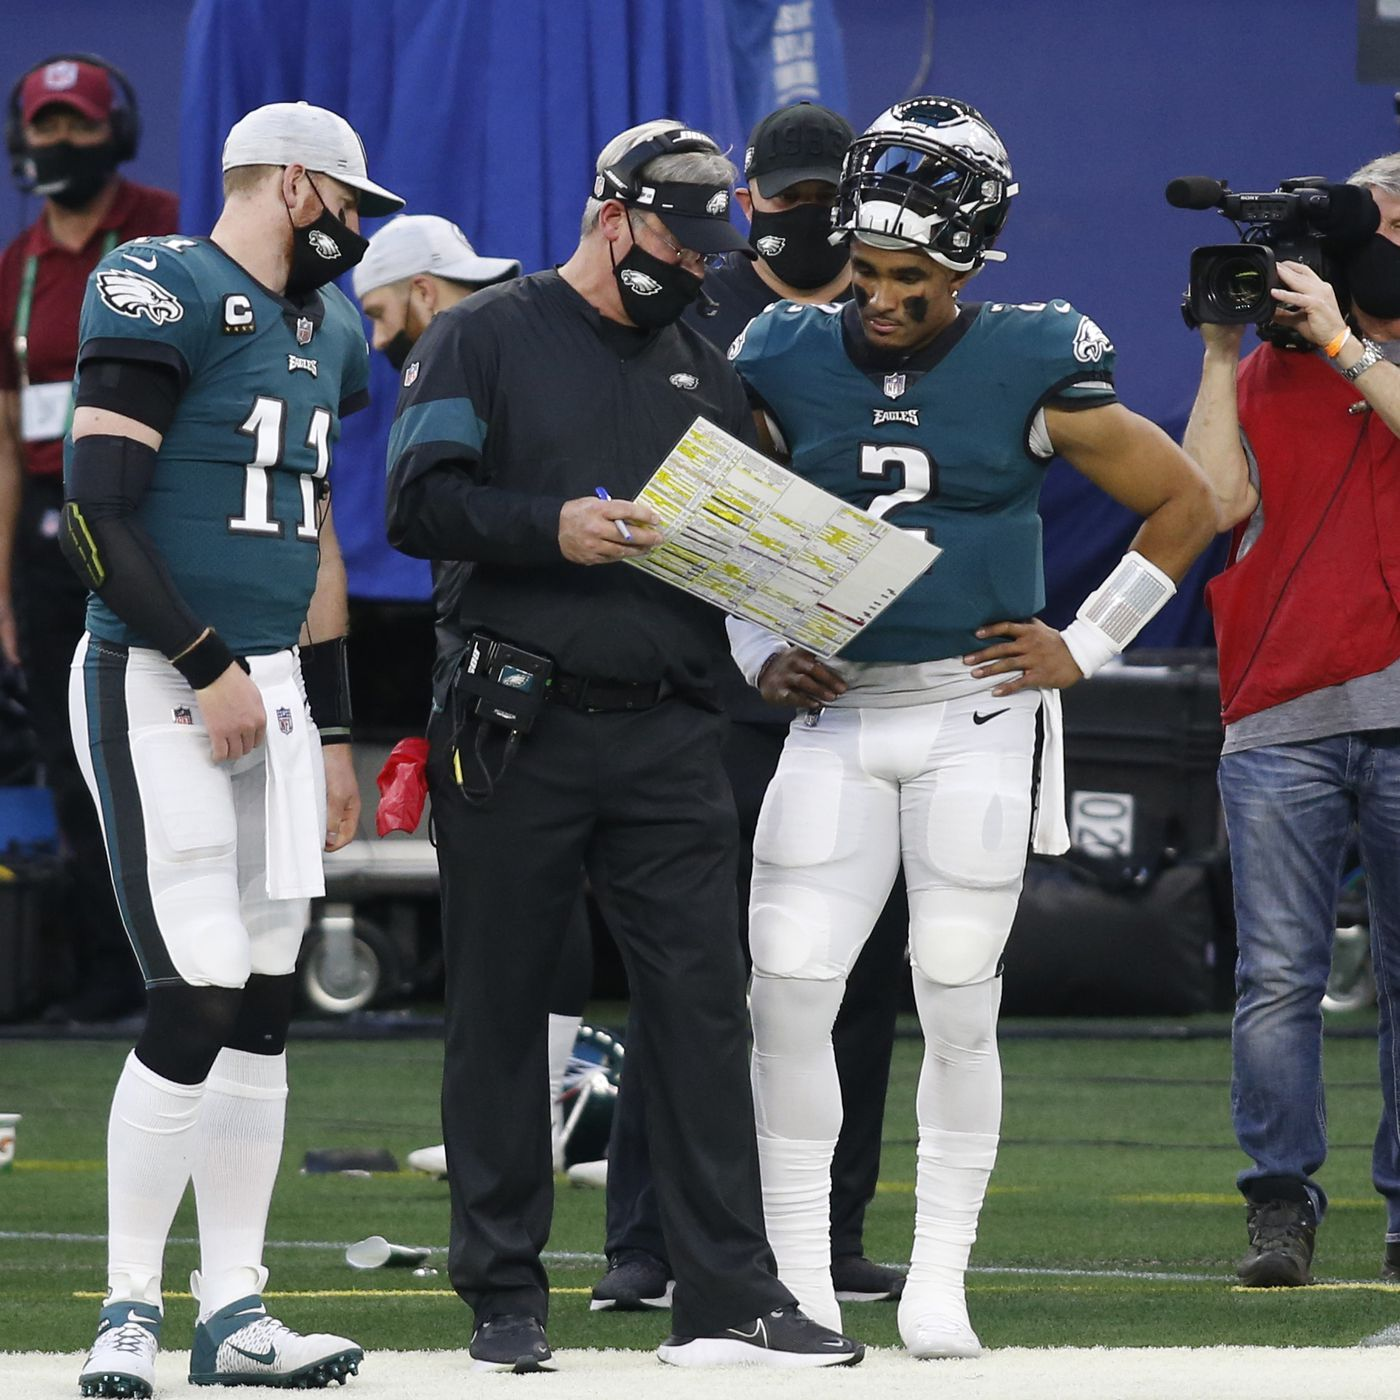 Washington At Eagles Sunday Night Football Game Time Tv Channel Odds How To Watch Live Online Big Blue View